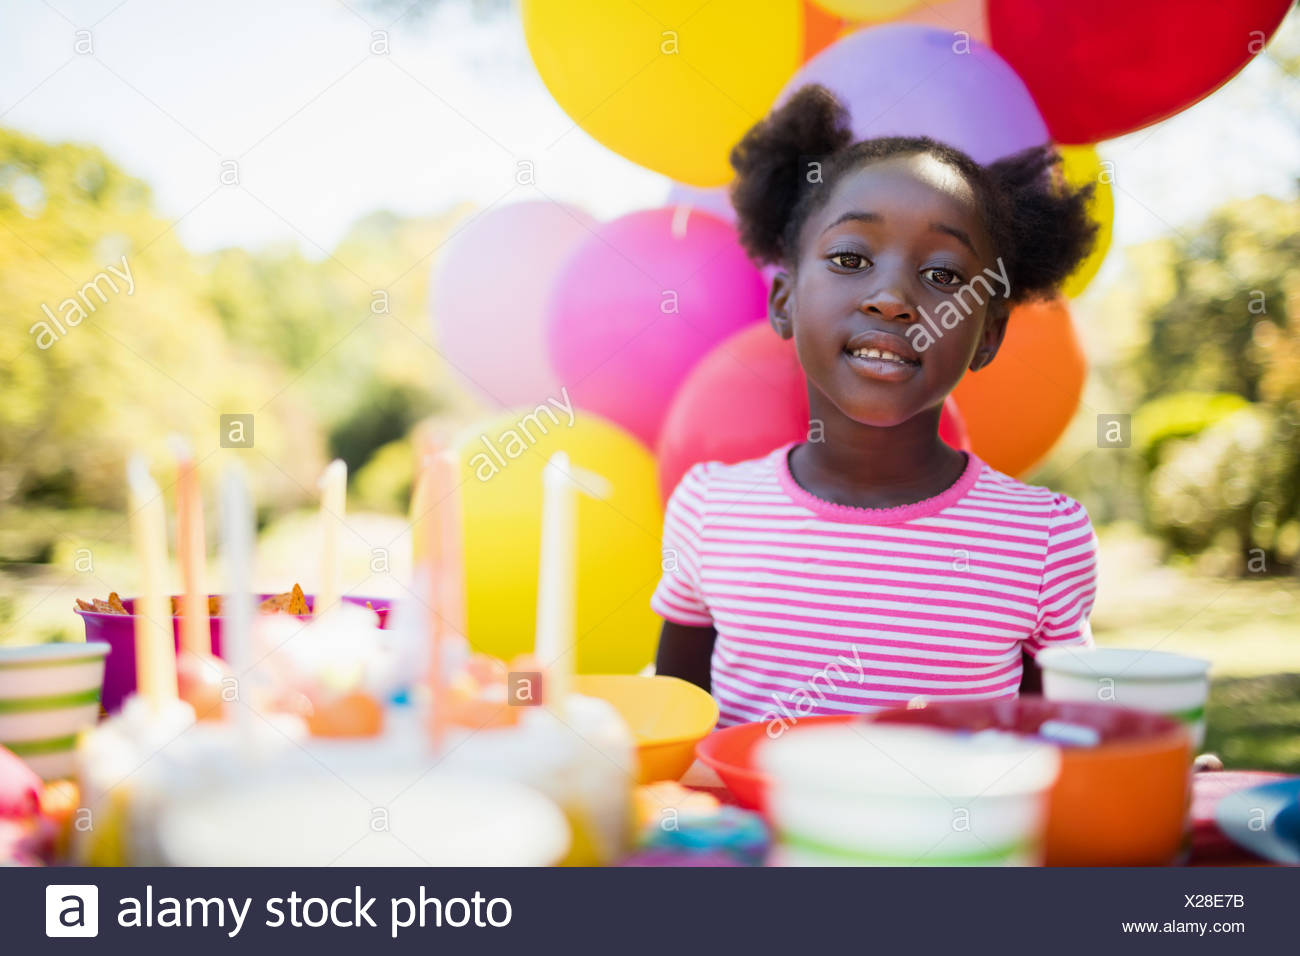 Portrait of cute girl posing during a birthday party - Stock Image